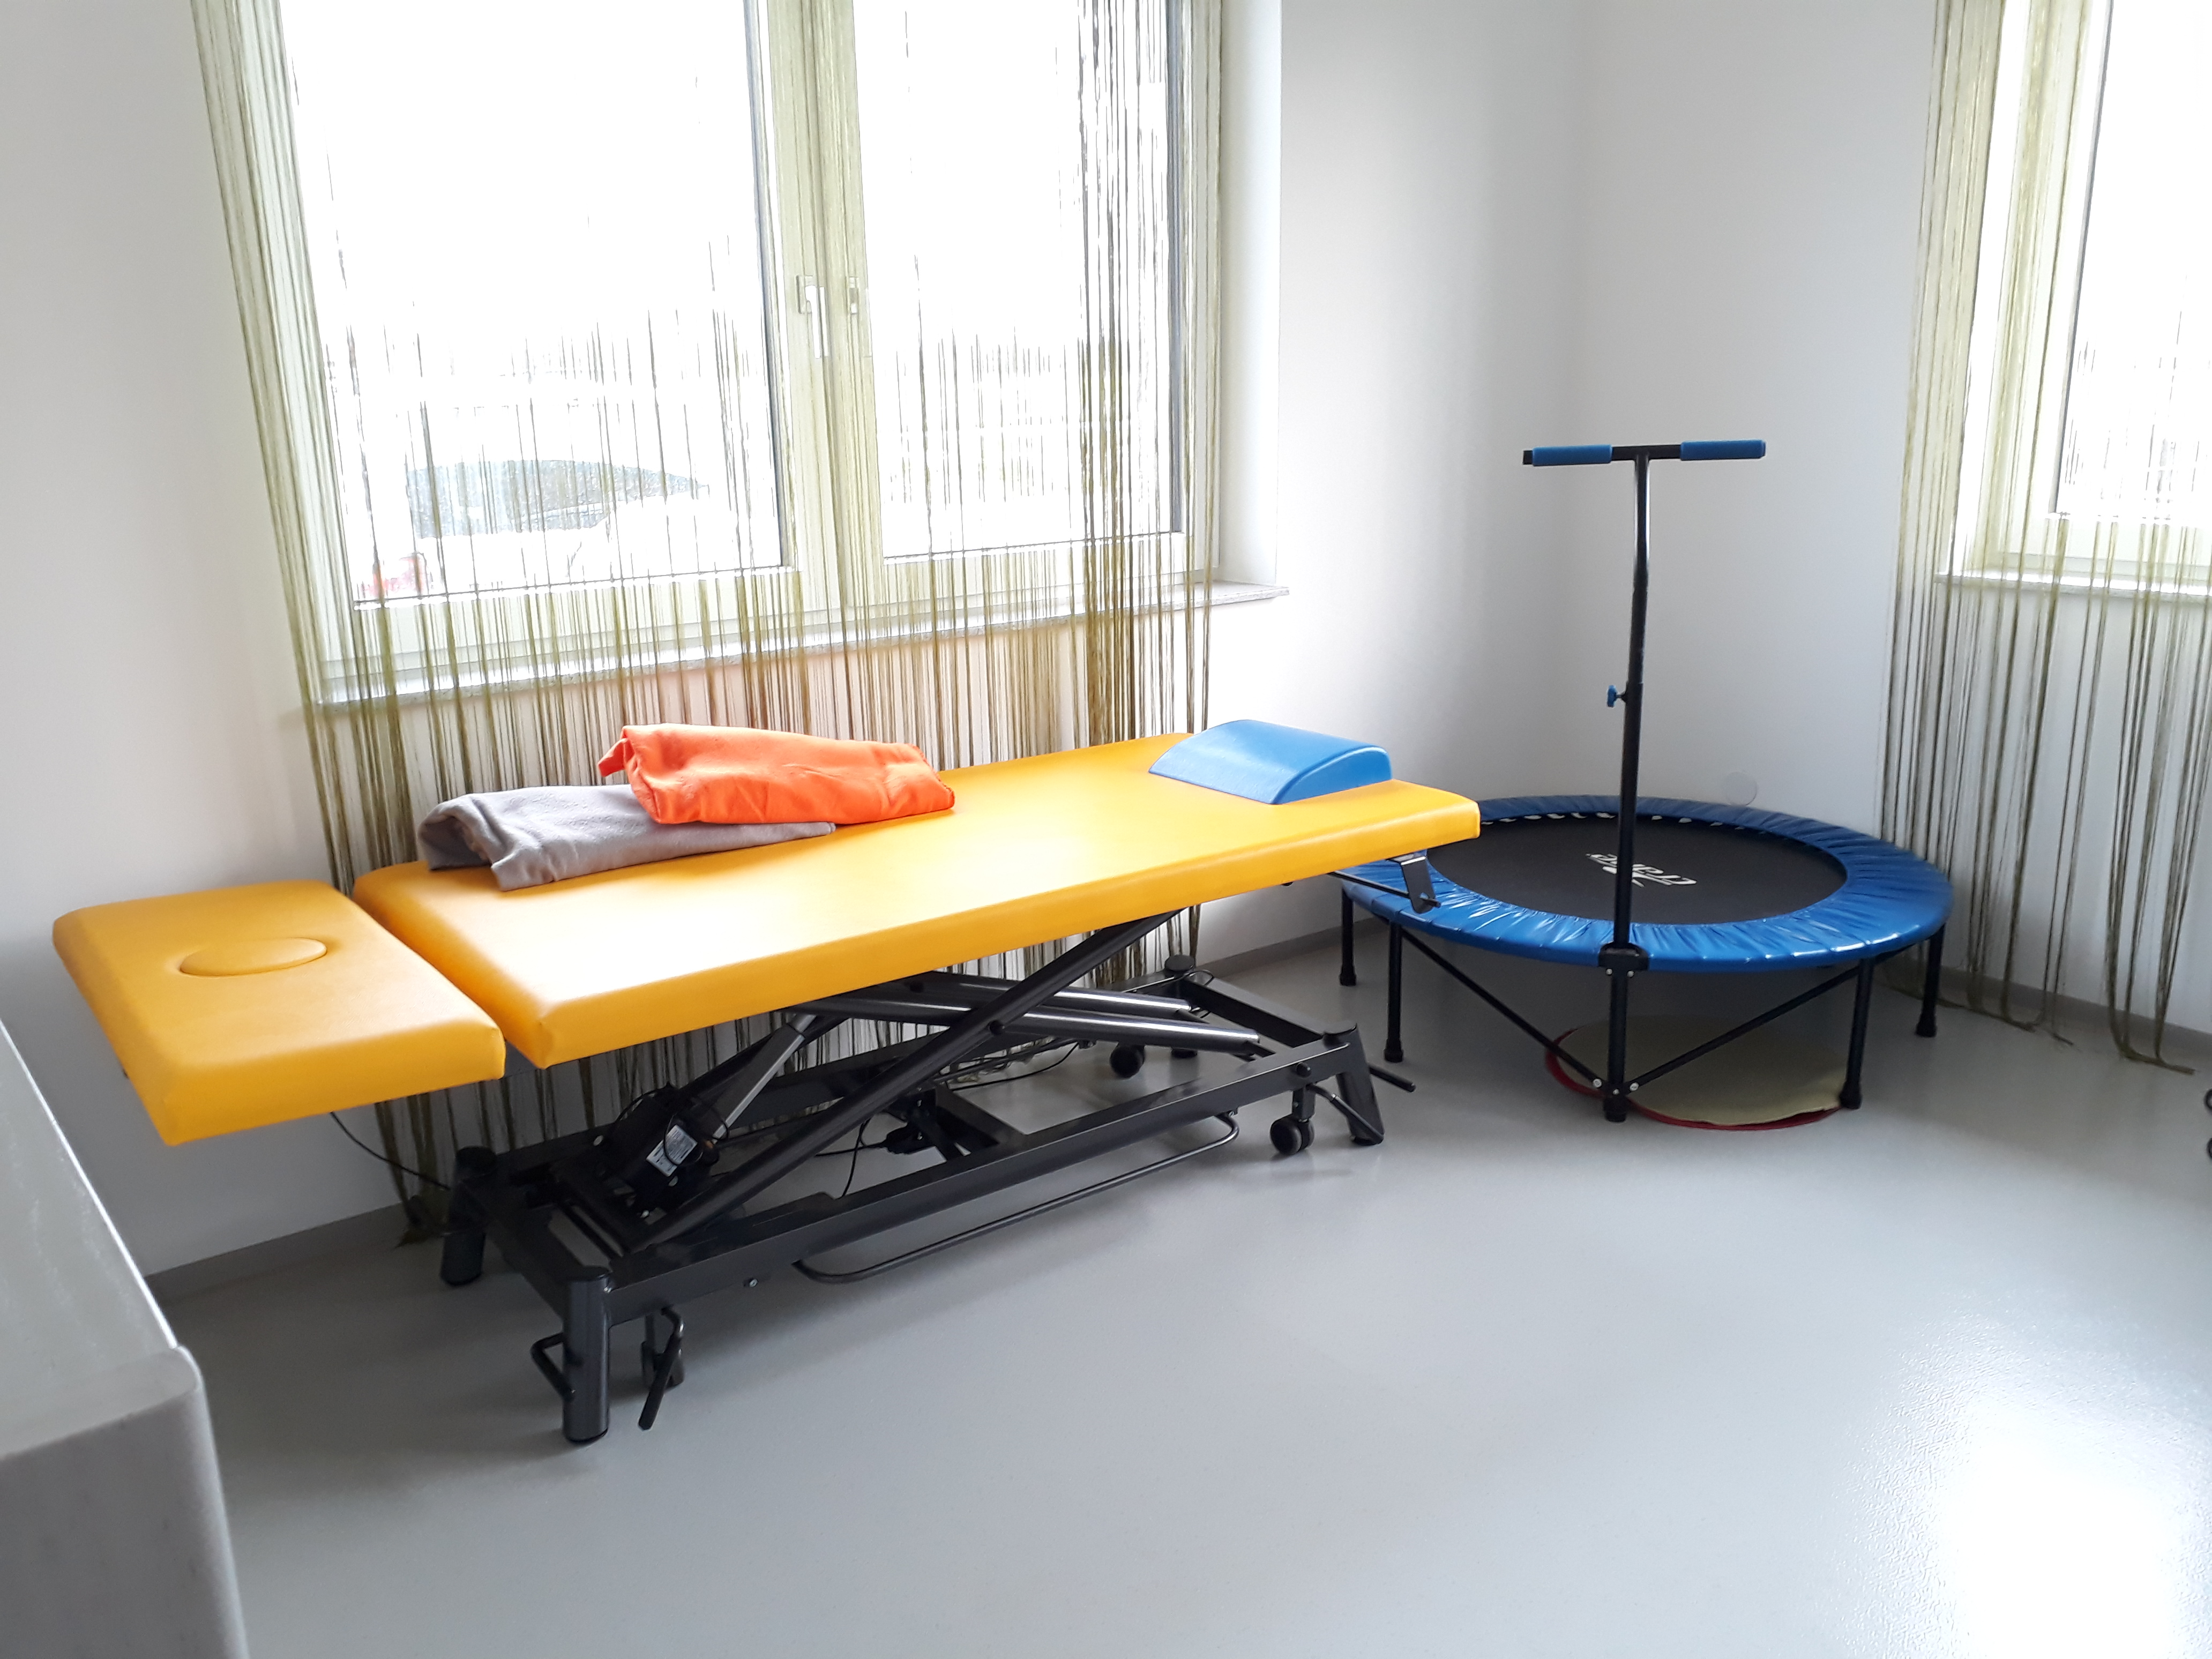 KINDER STÄRKEN, Therapieraum, Physio